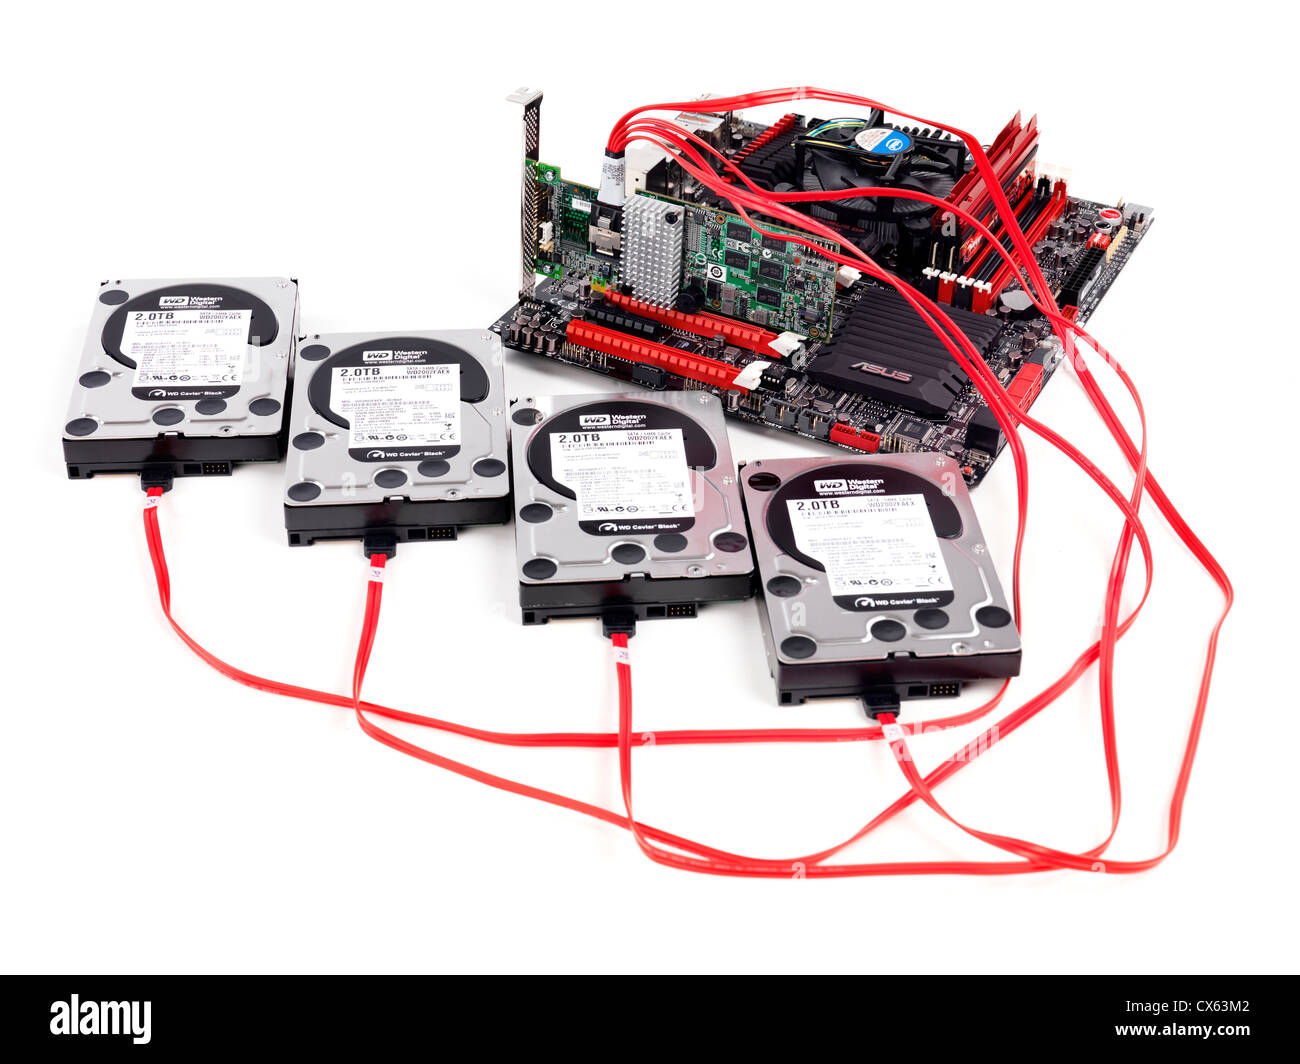 Hard drives connected to computer motherboard with a RAID controller isolated on white background - Stock Image